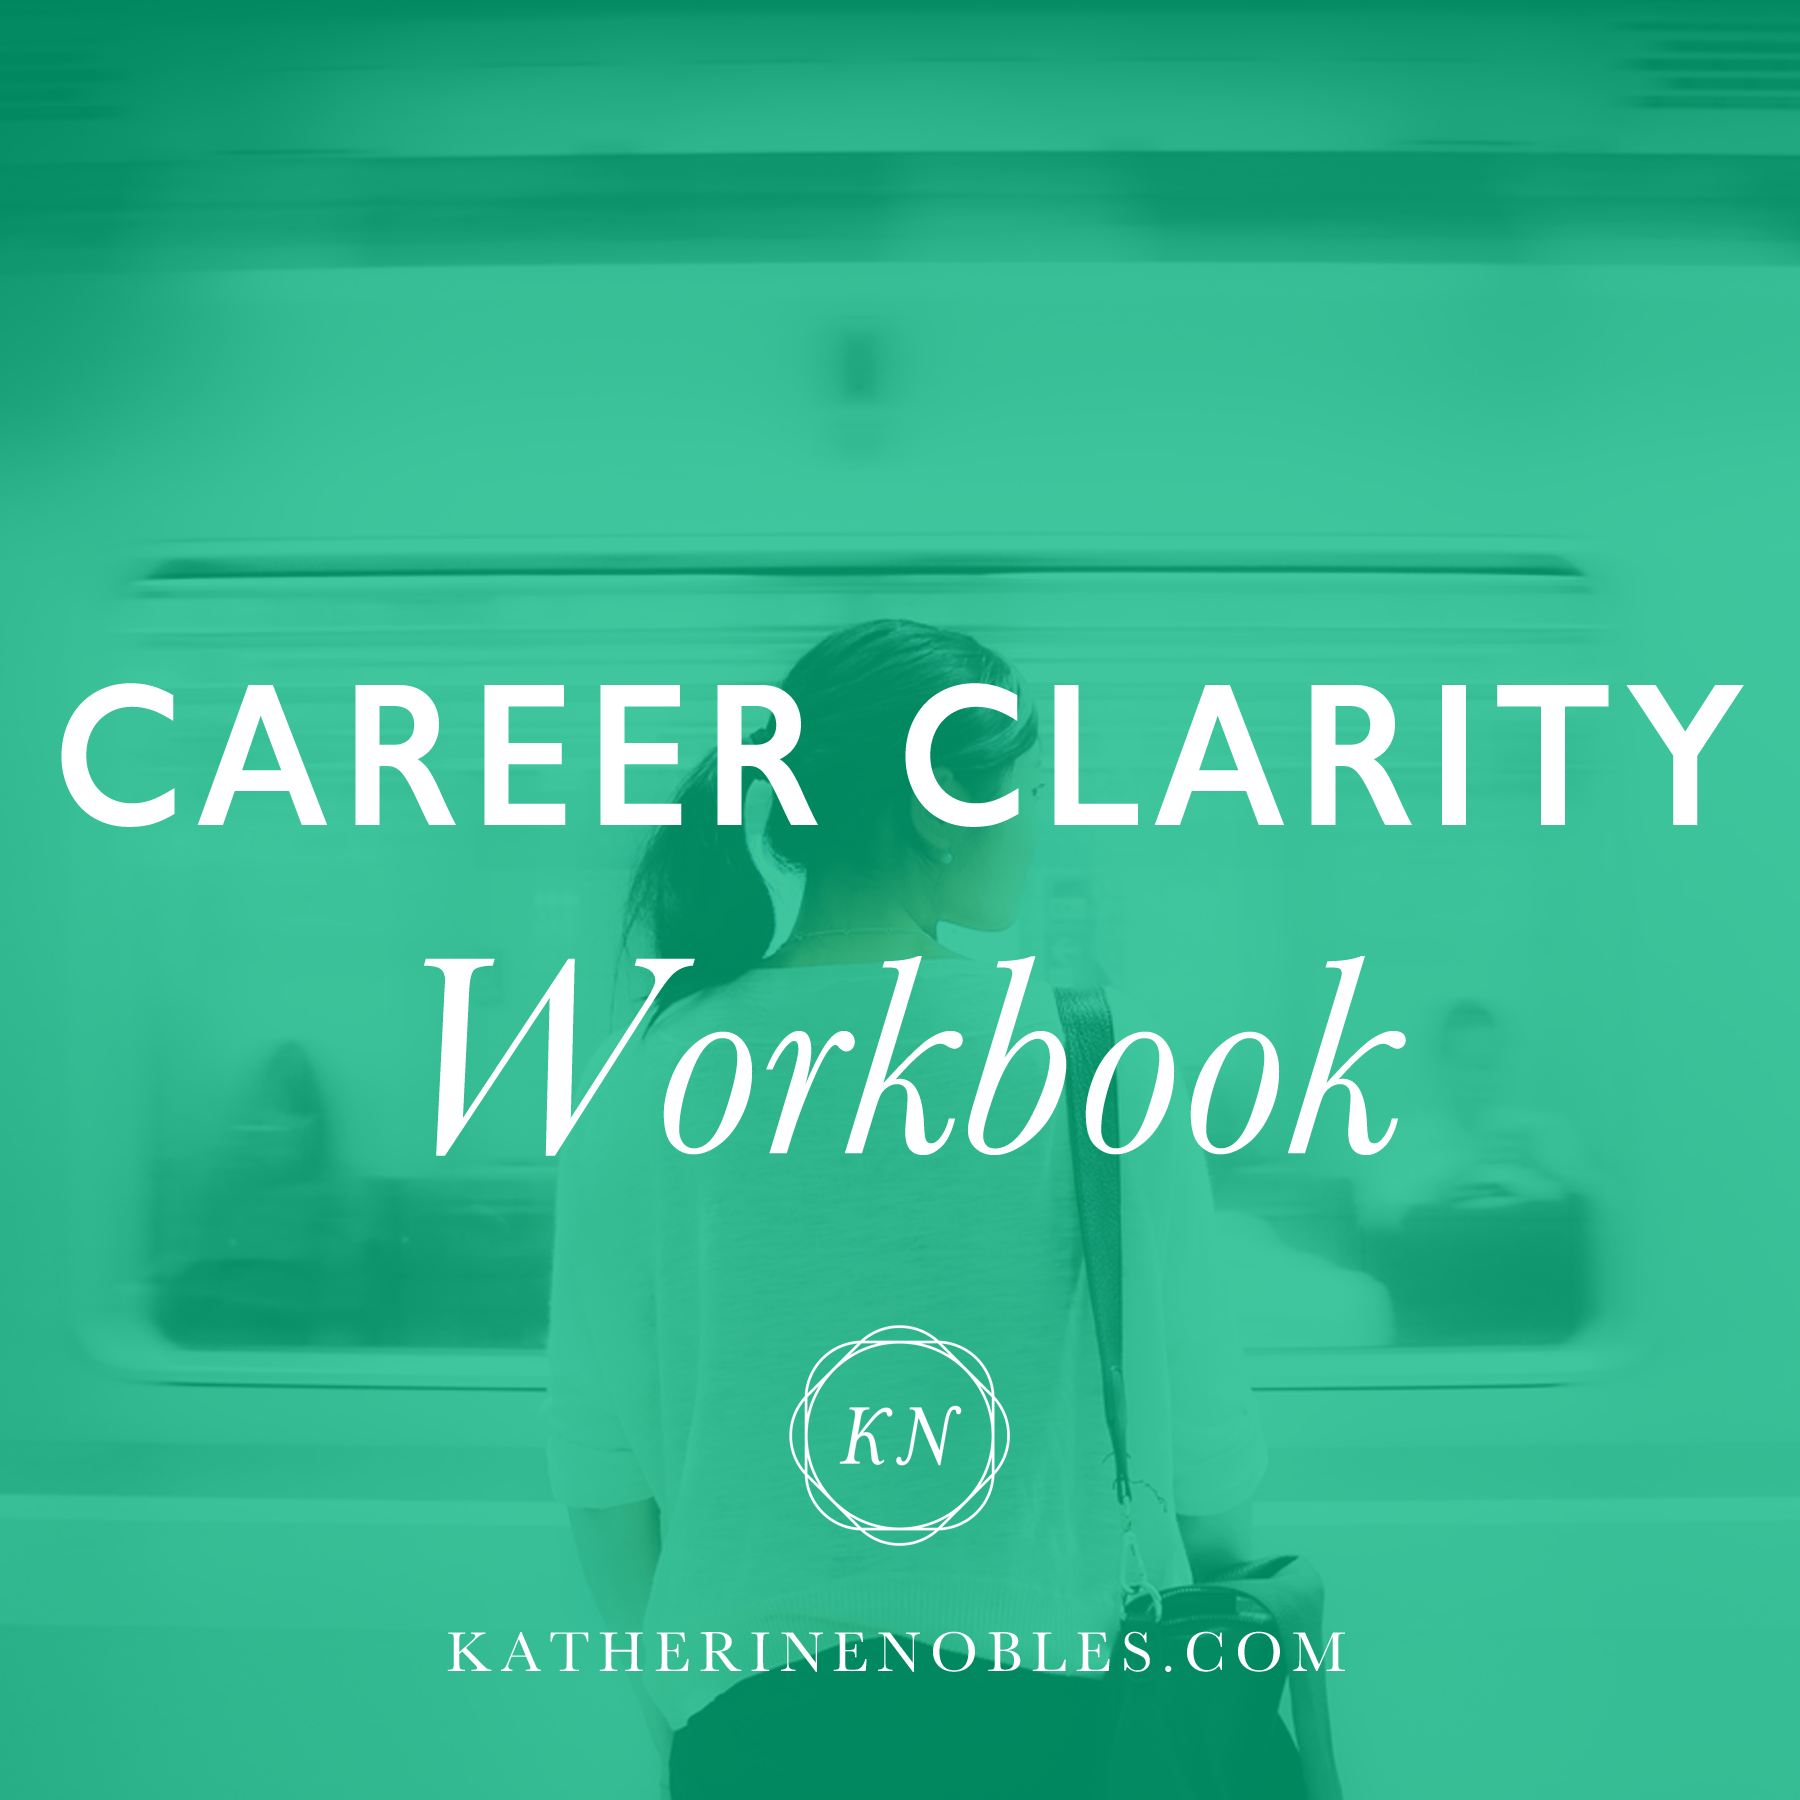 Career Clarity Workbook